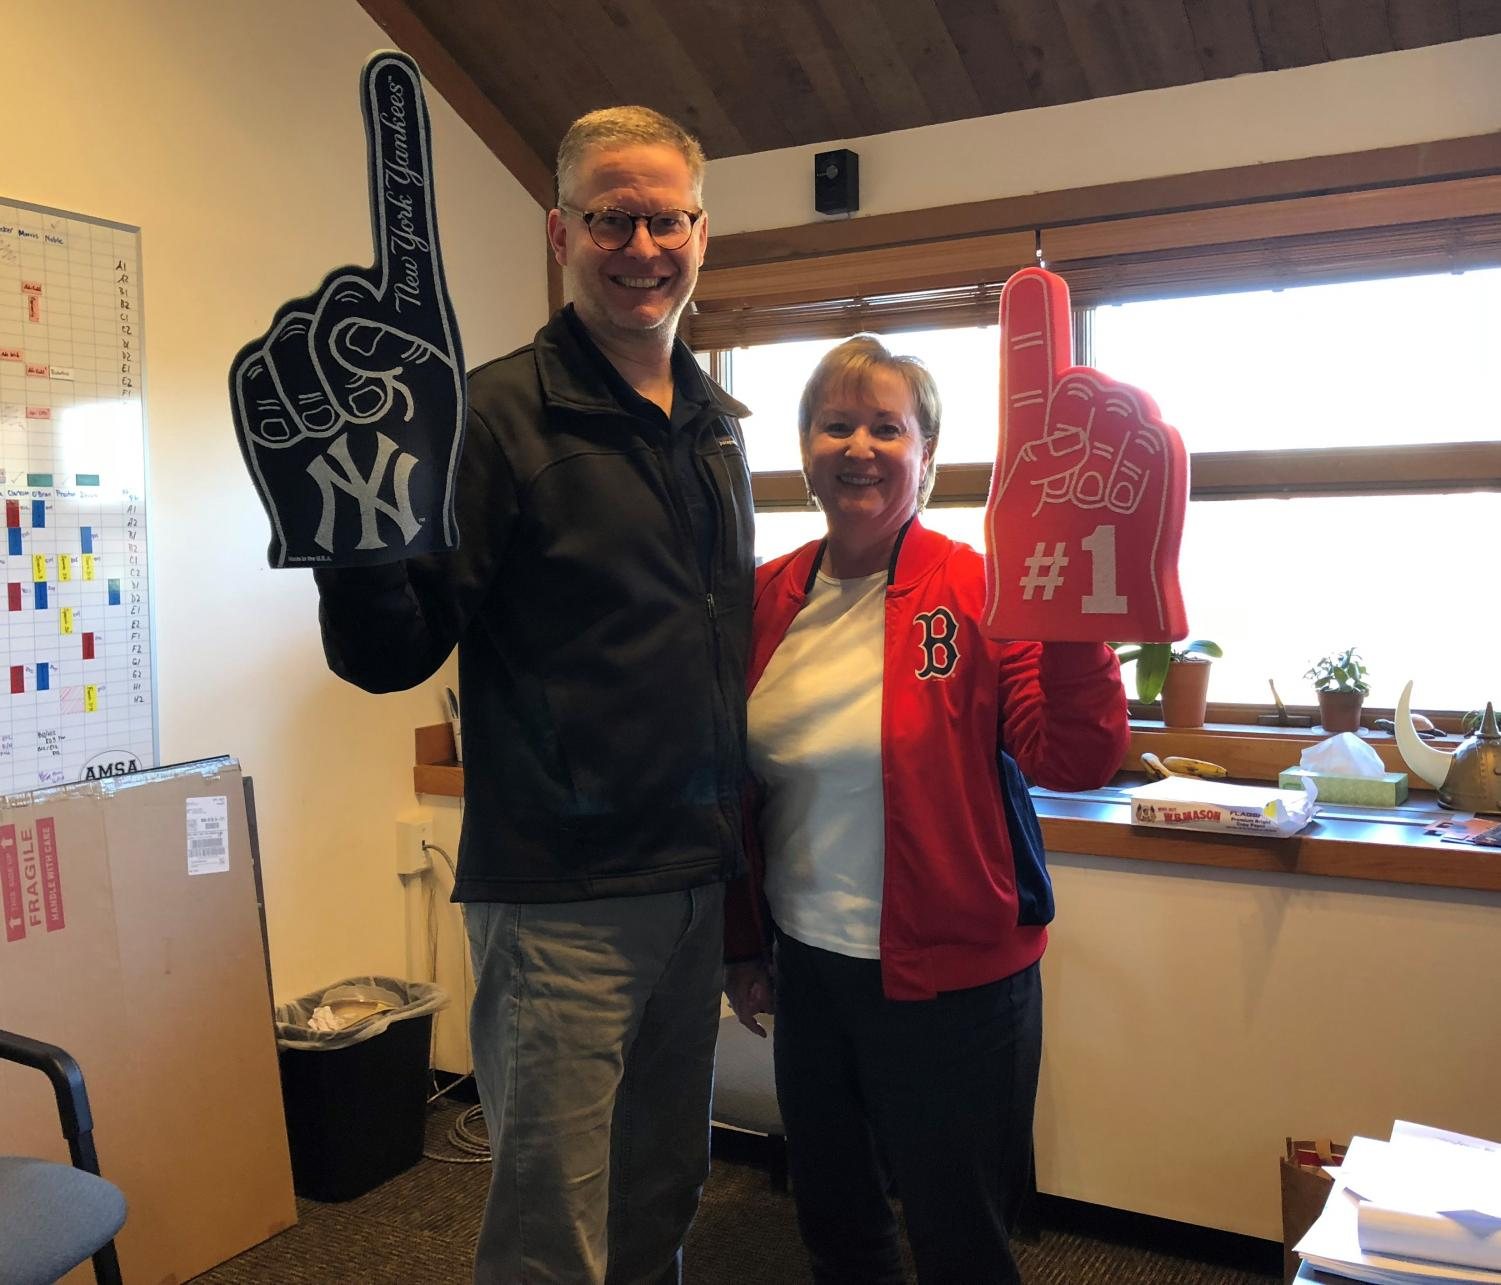 Executive Director Dr. Anders Lewis and Principal Ellen Linzey have let their rivalry strengthen their friendship.